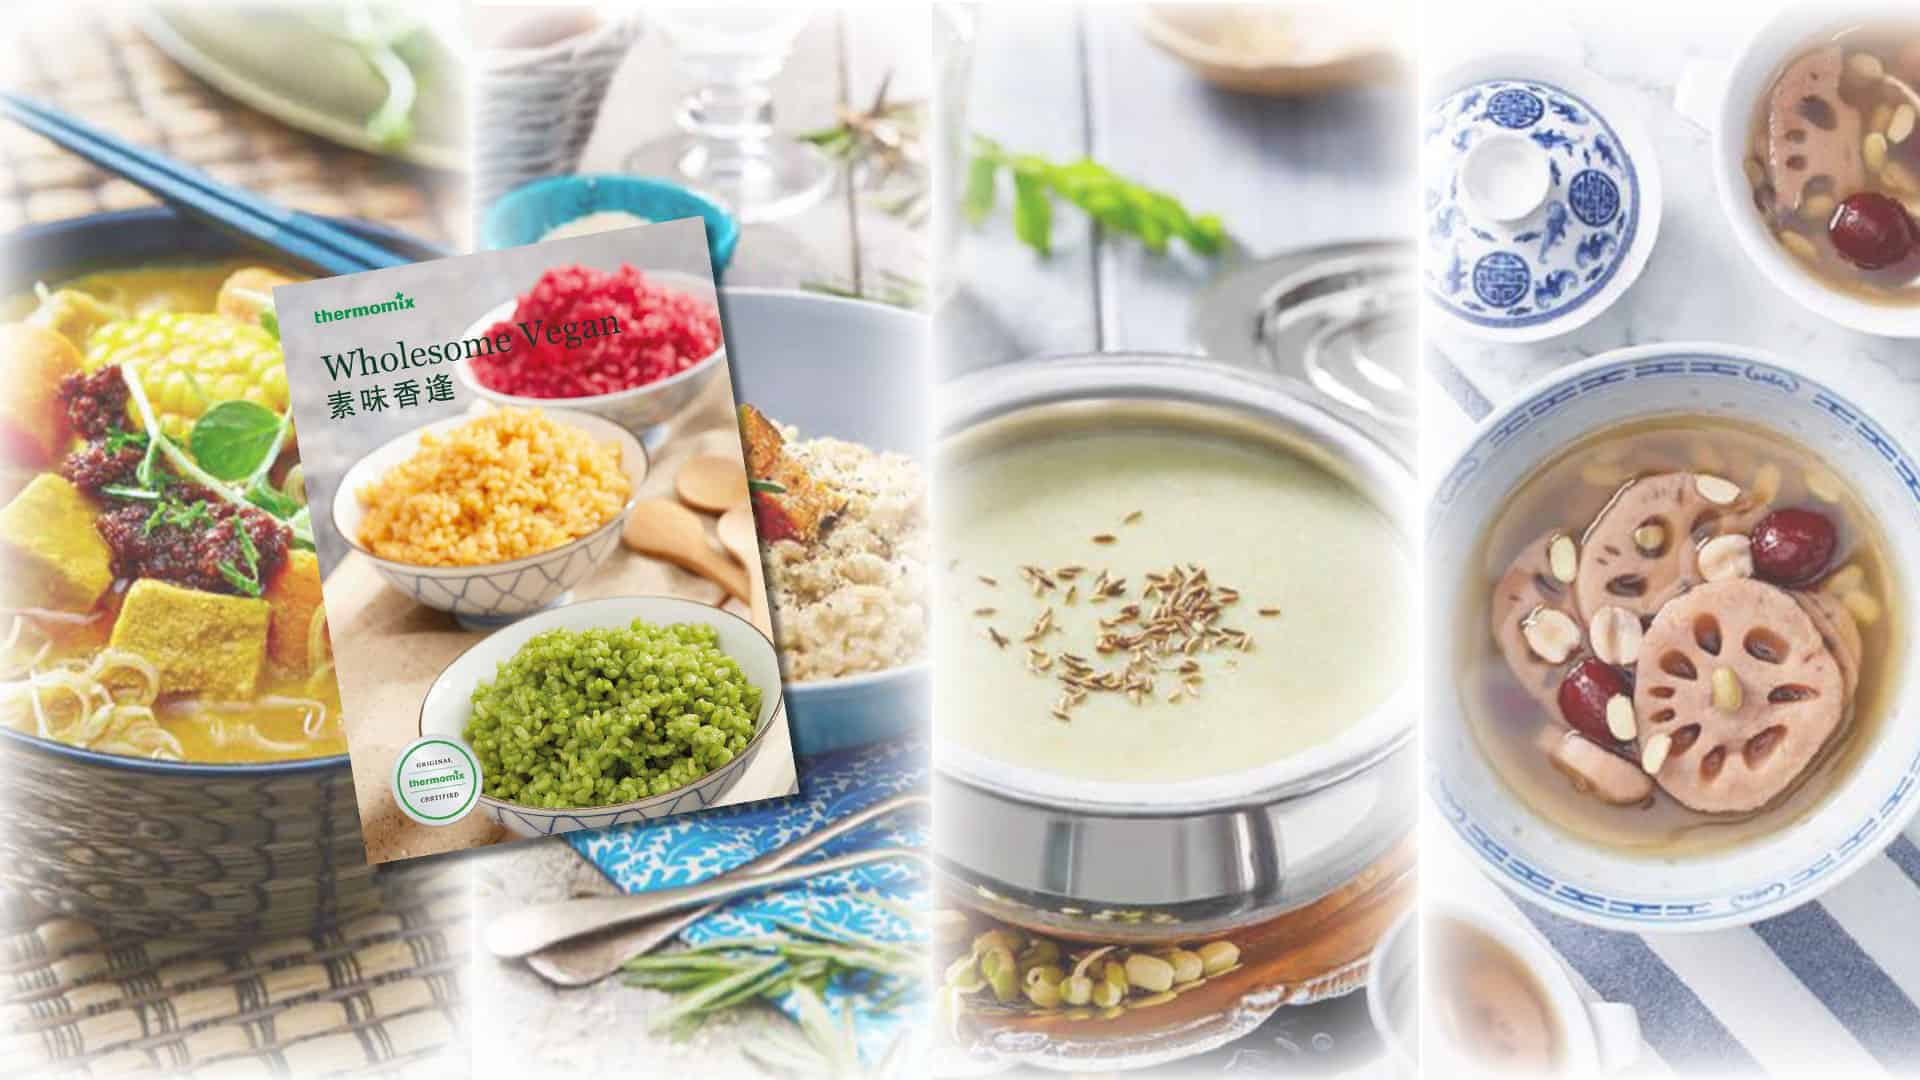 PURCHASE NOW! THERMOMIX® WHOLESOME VEGAN!